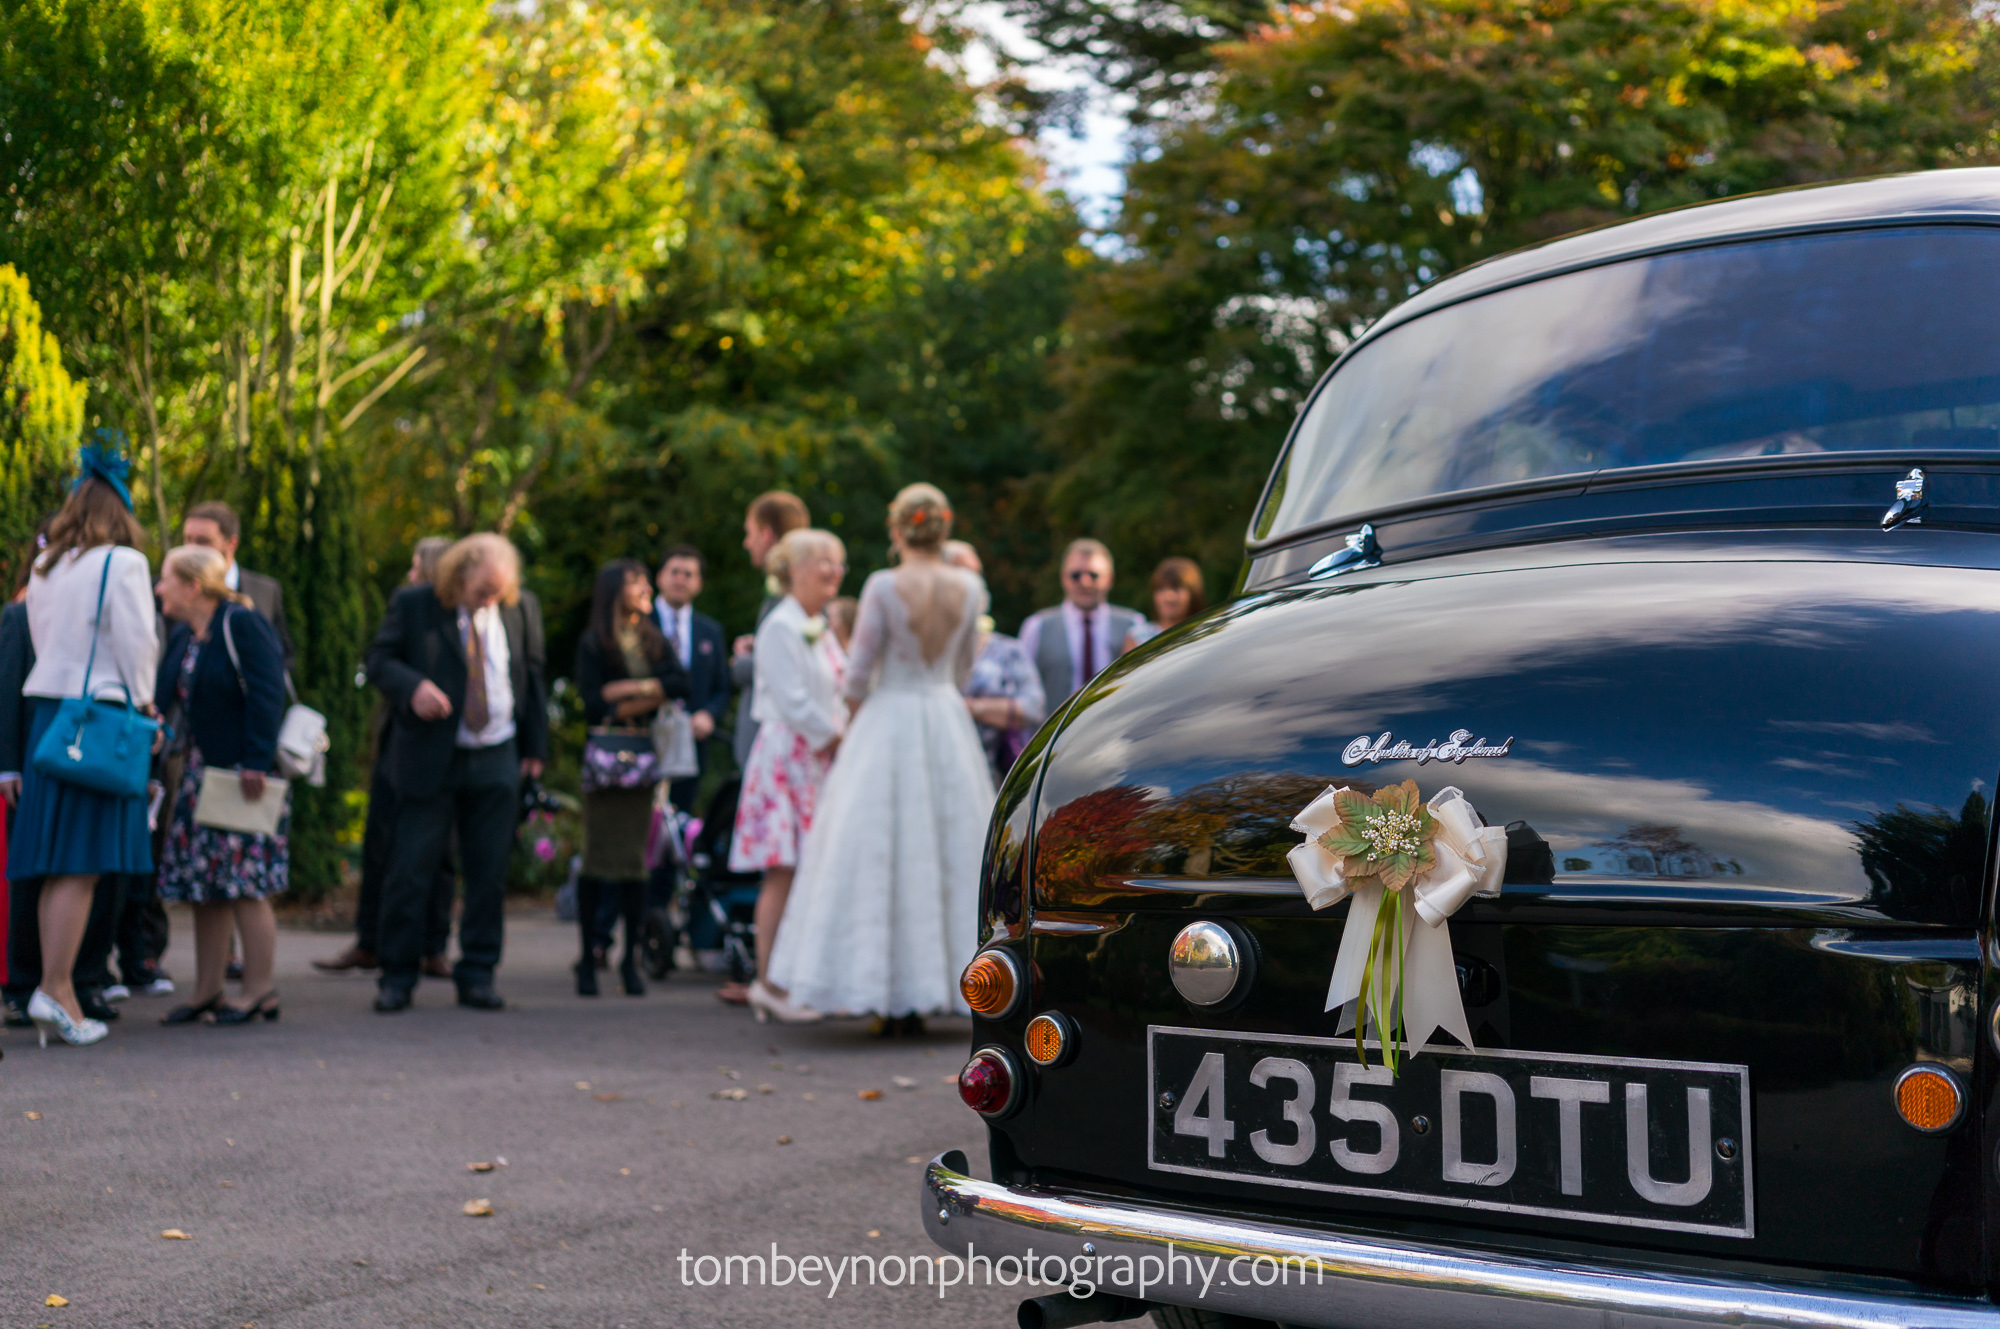 The wedding car in the driveway of Rodbaston Hall as guests chat in the background